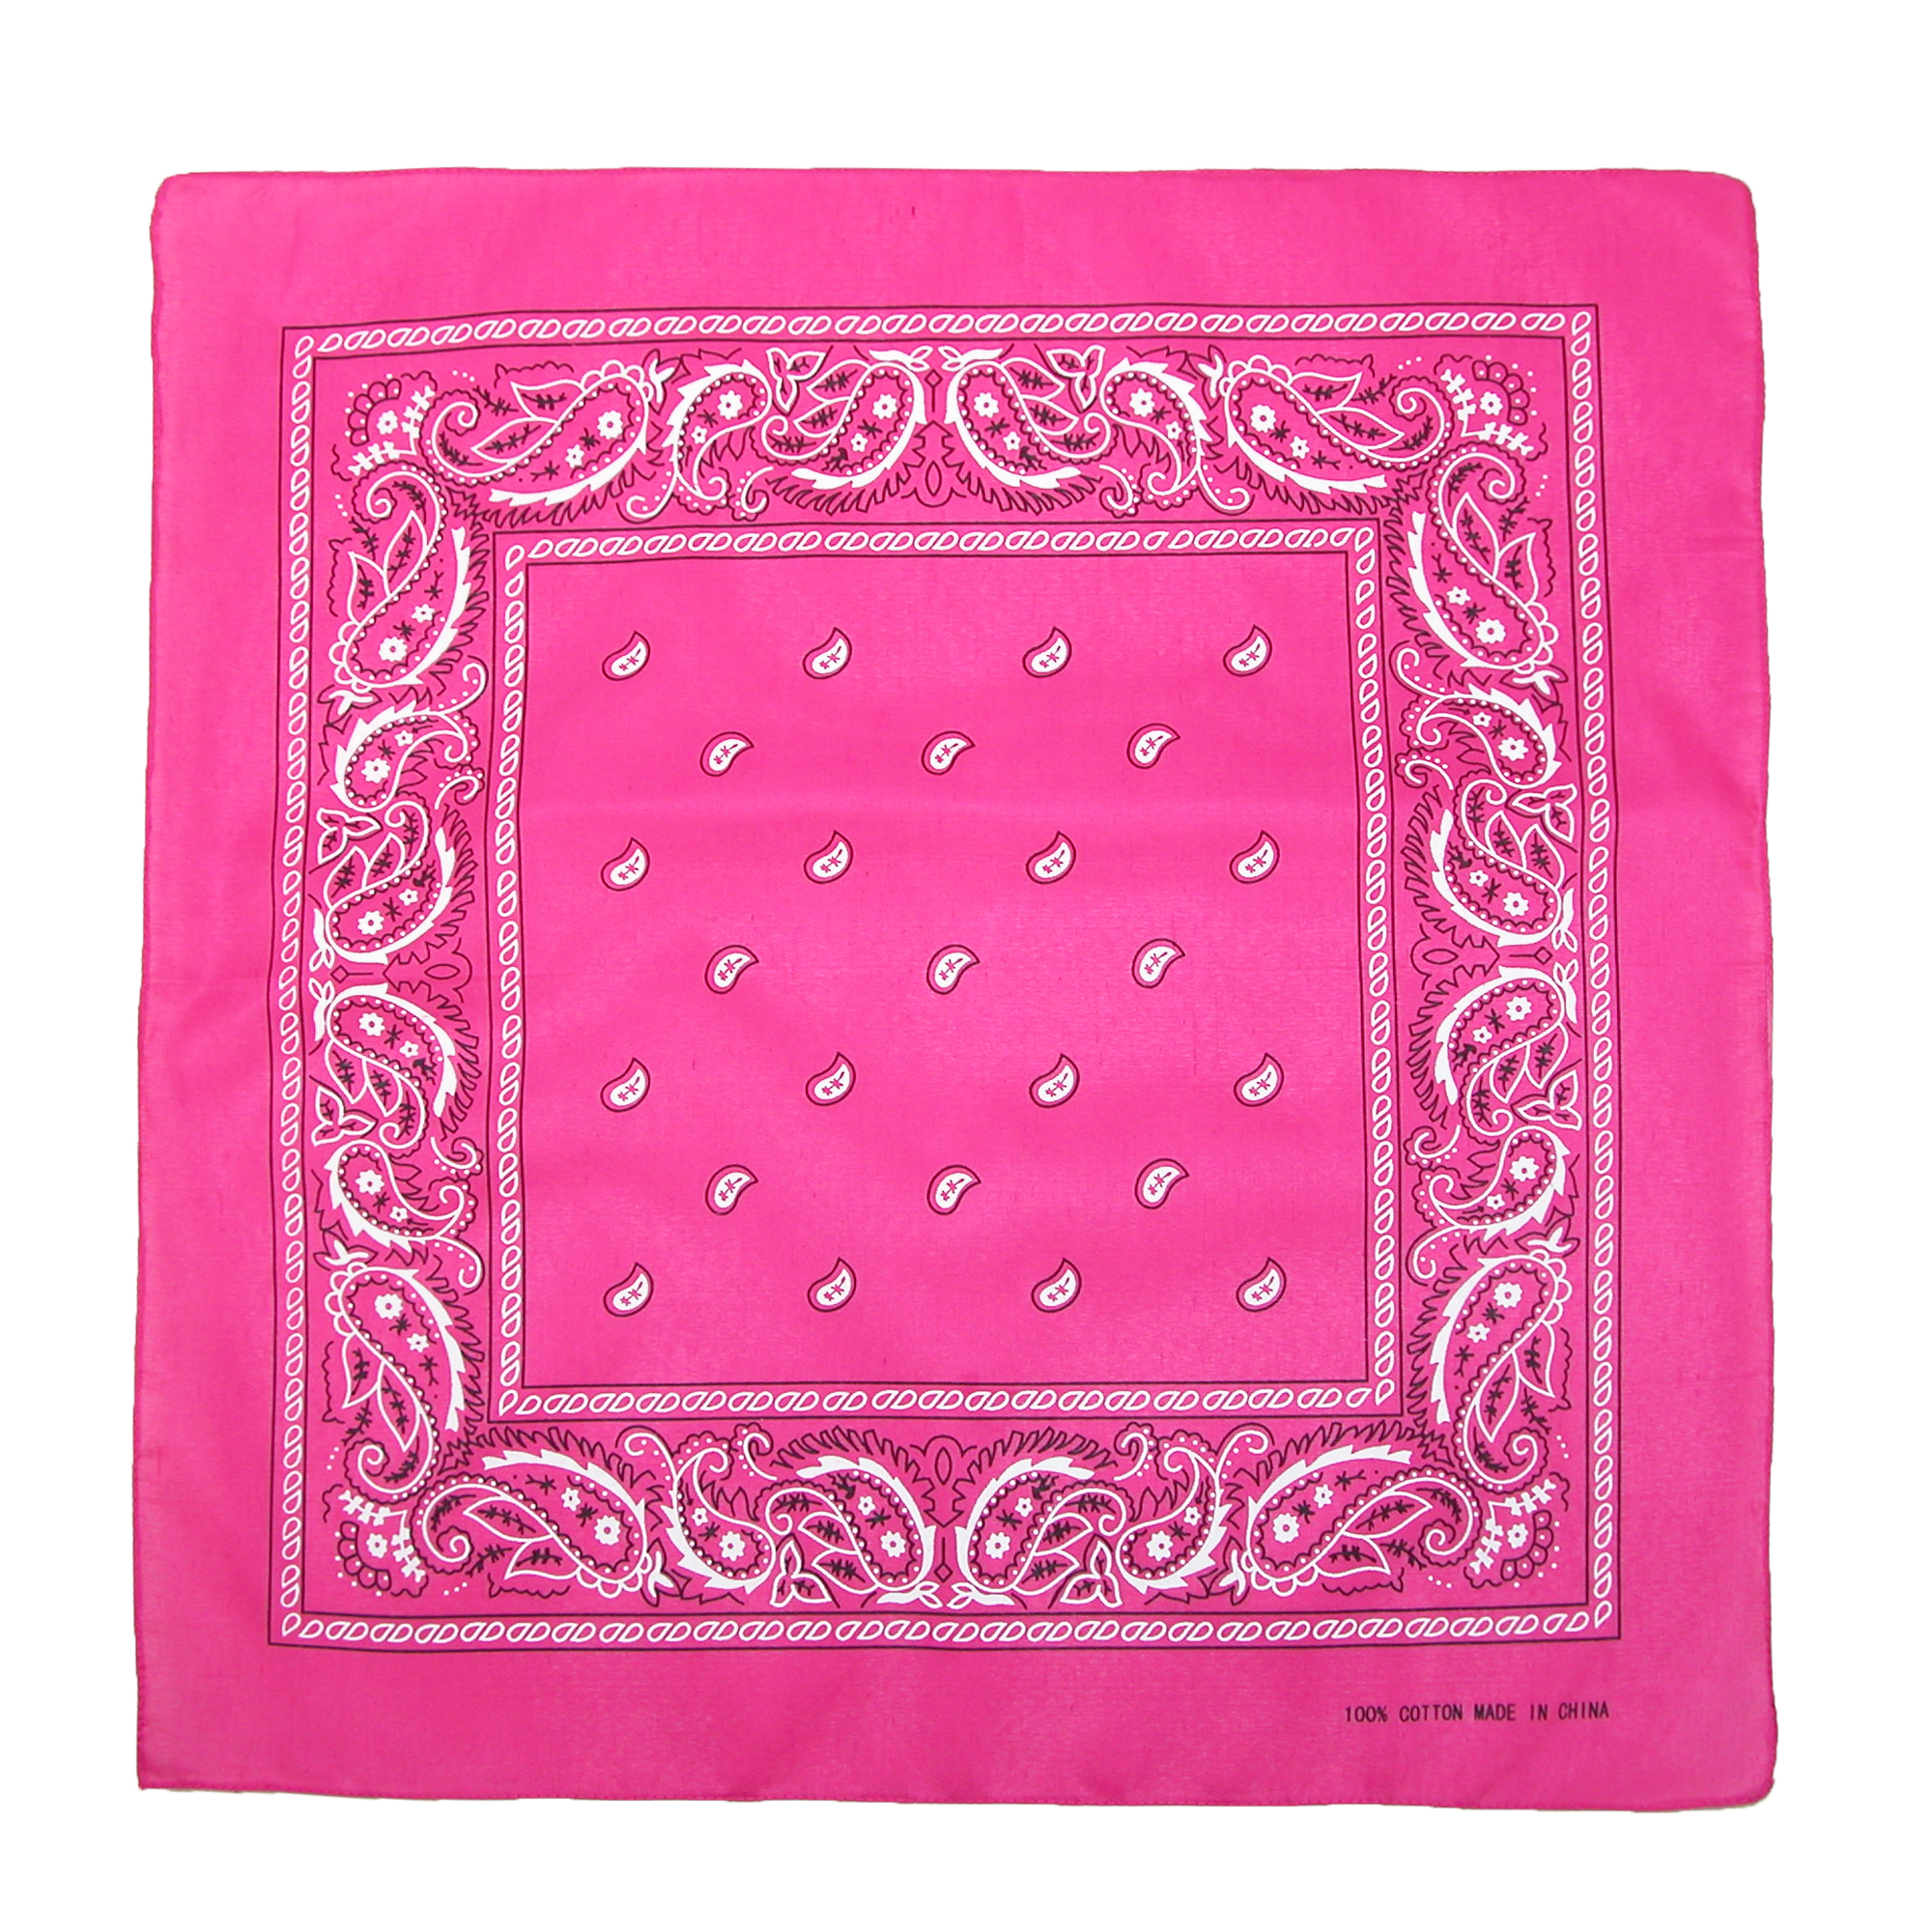 CTM®  Individually Folded & Packaged Paisley Print Cotton Bandana